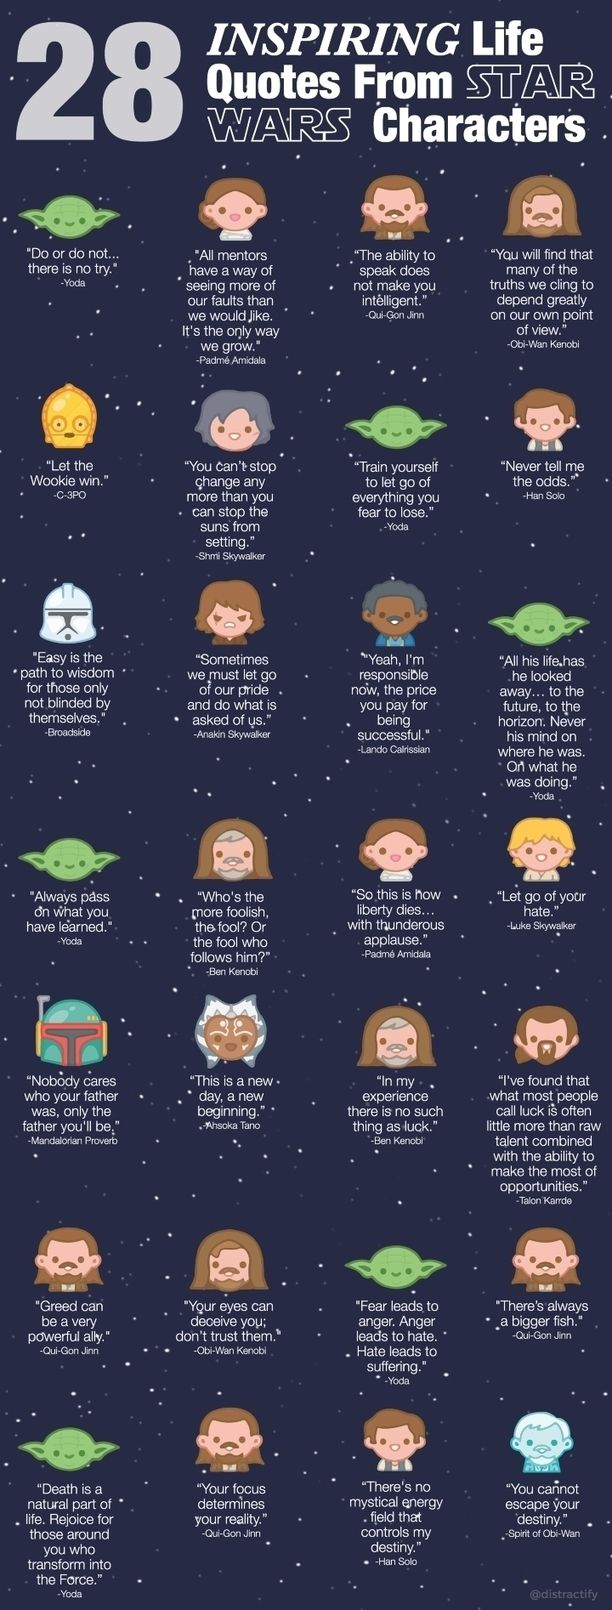 Star Wars Love Quotes 28 Wise Quotes From Star Wars That Will Inspire Your Life